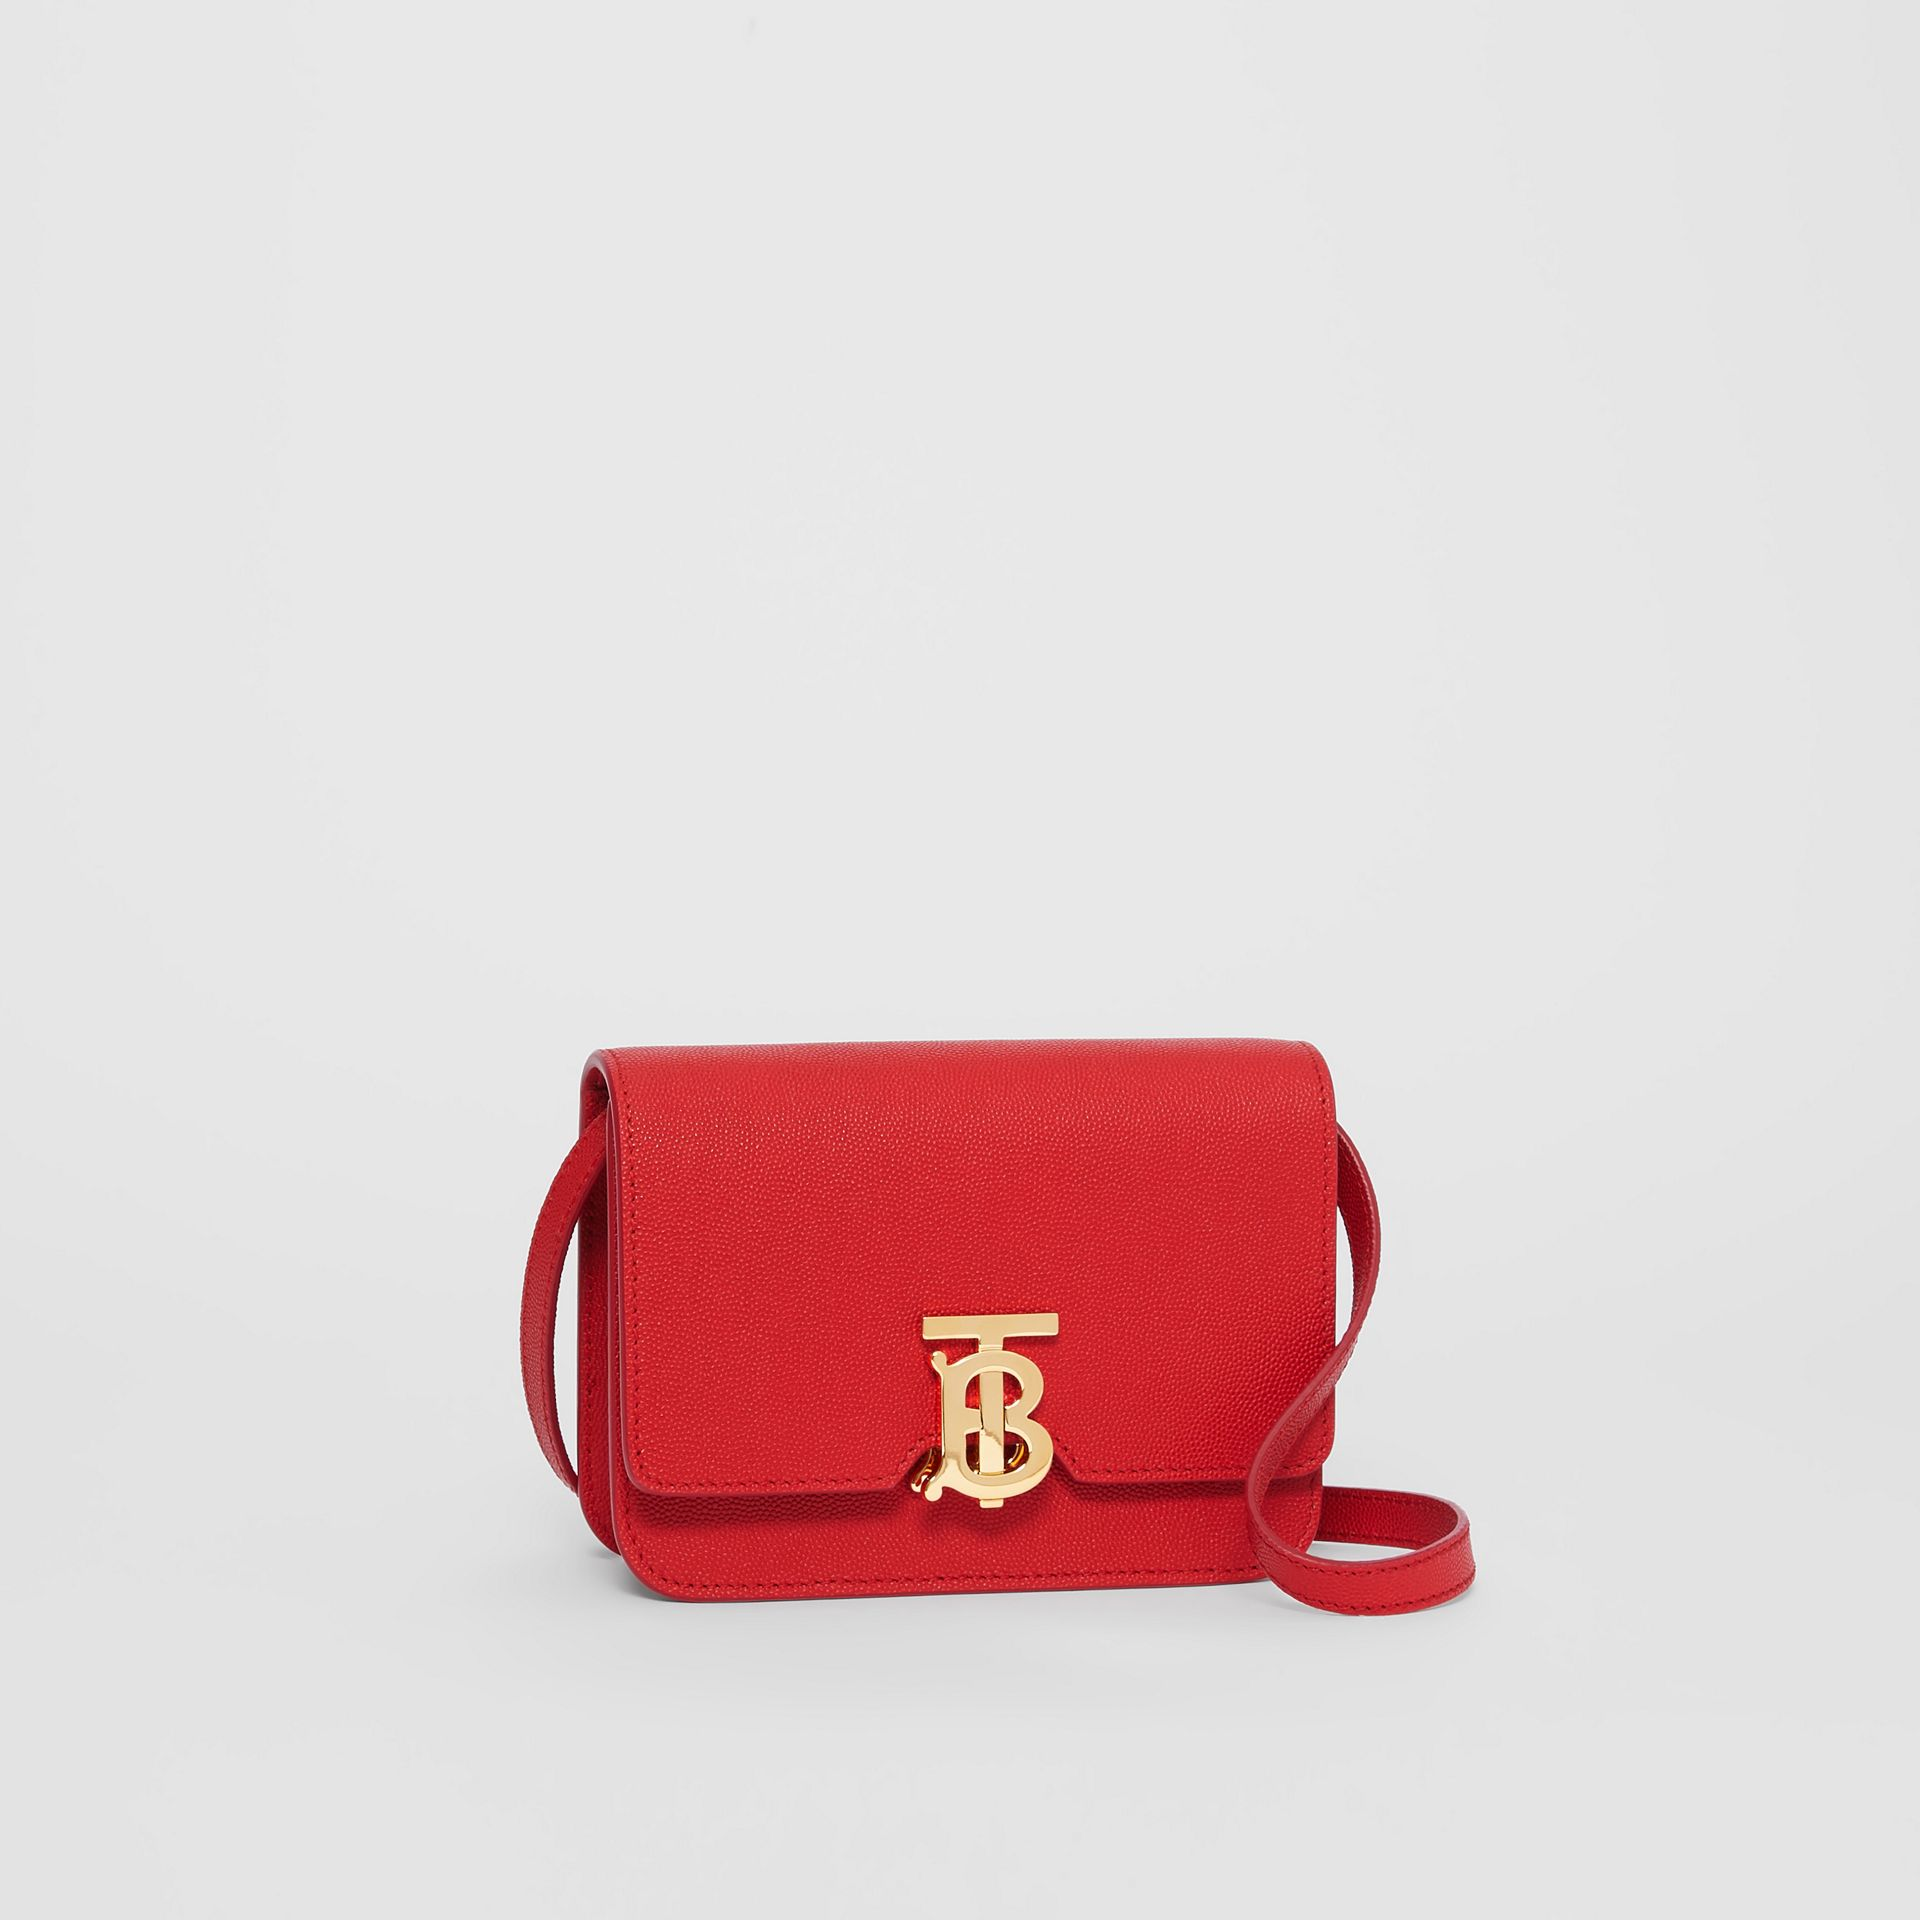 Mini Grainy Leather TB Bag in Bright Red - Women | Burberry - gallery image 6